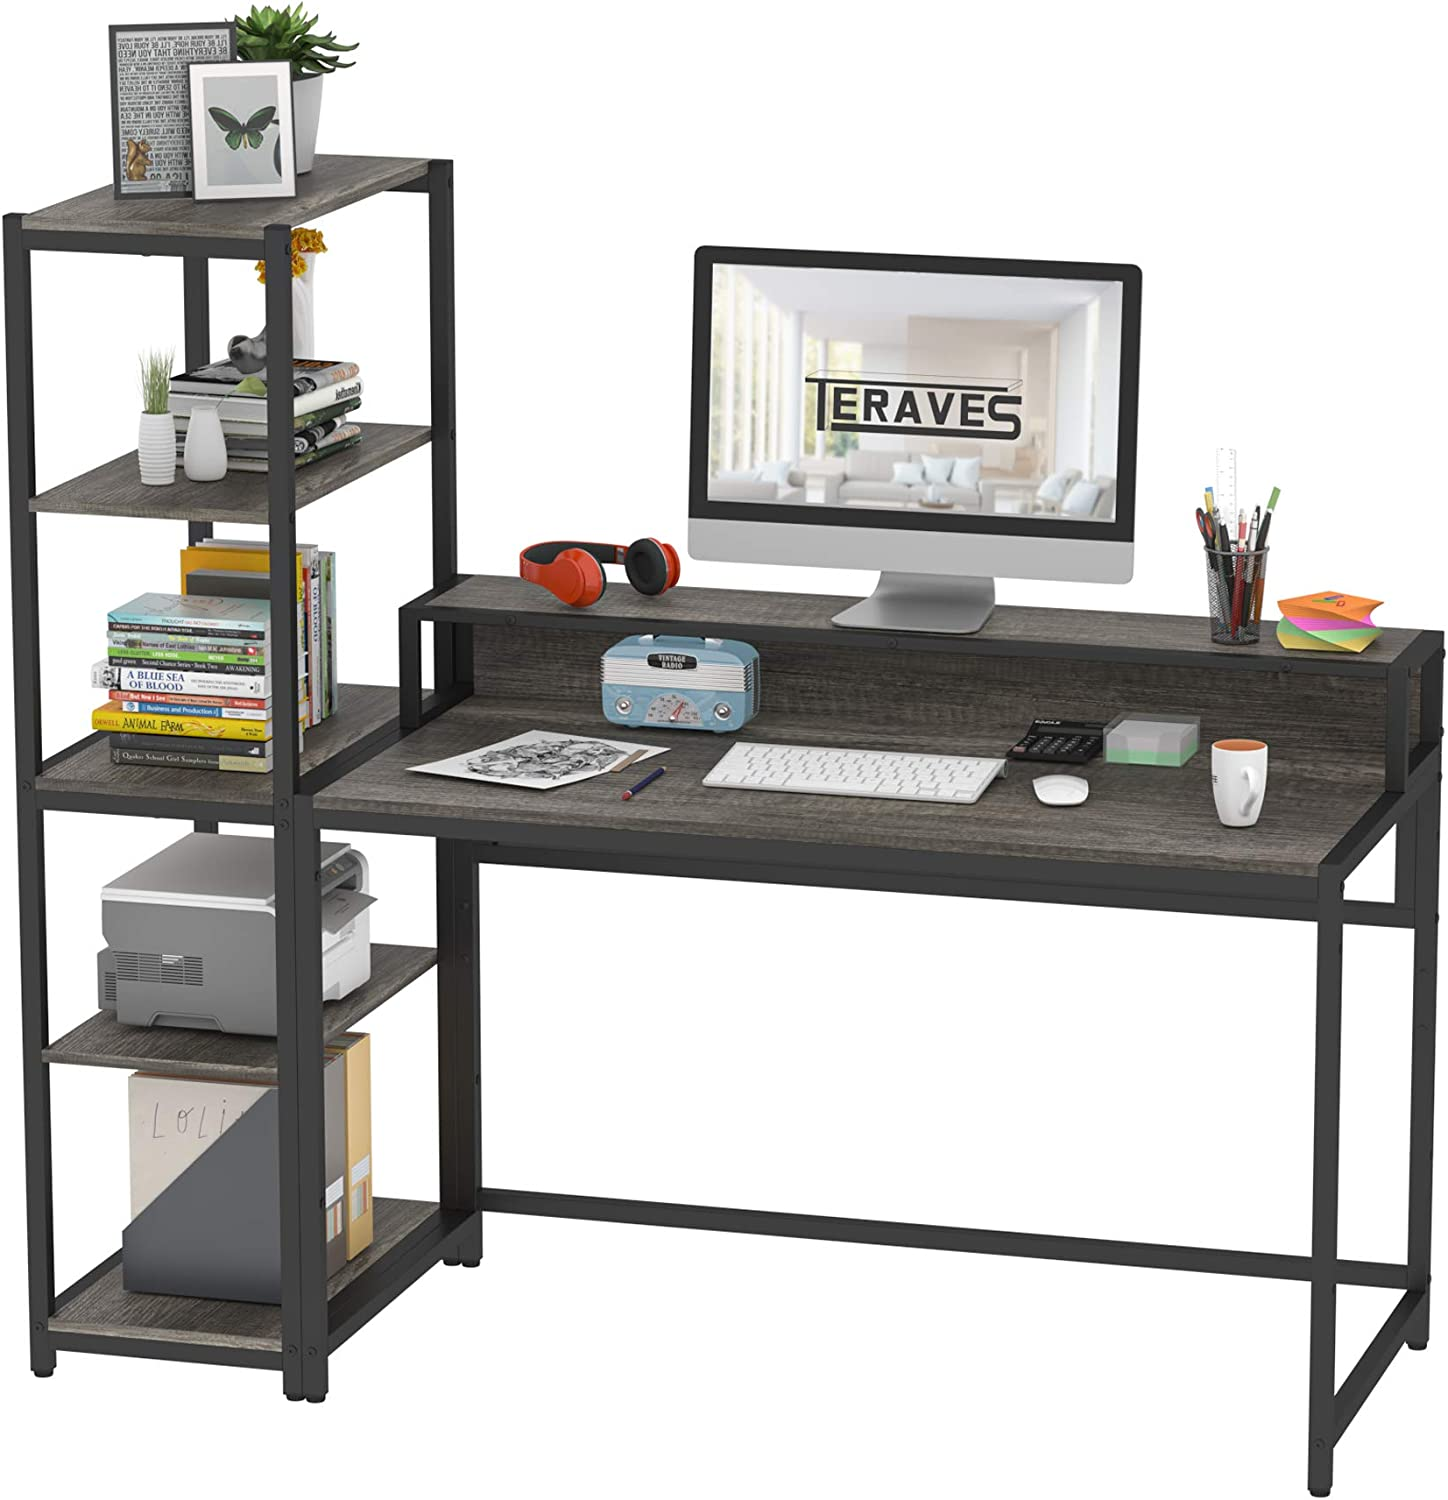 Teraves Computer Desk with 5 Tier Shelves,Reversible Writing Desk with Storage 47 Inch Study Table for Home Office Independent Bookcase and Desk for Multiple Scenes (Desk+Shelves, BOAK)